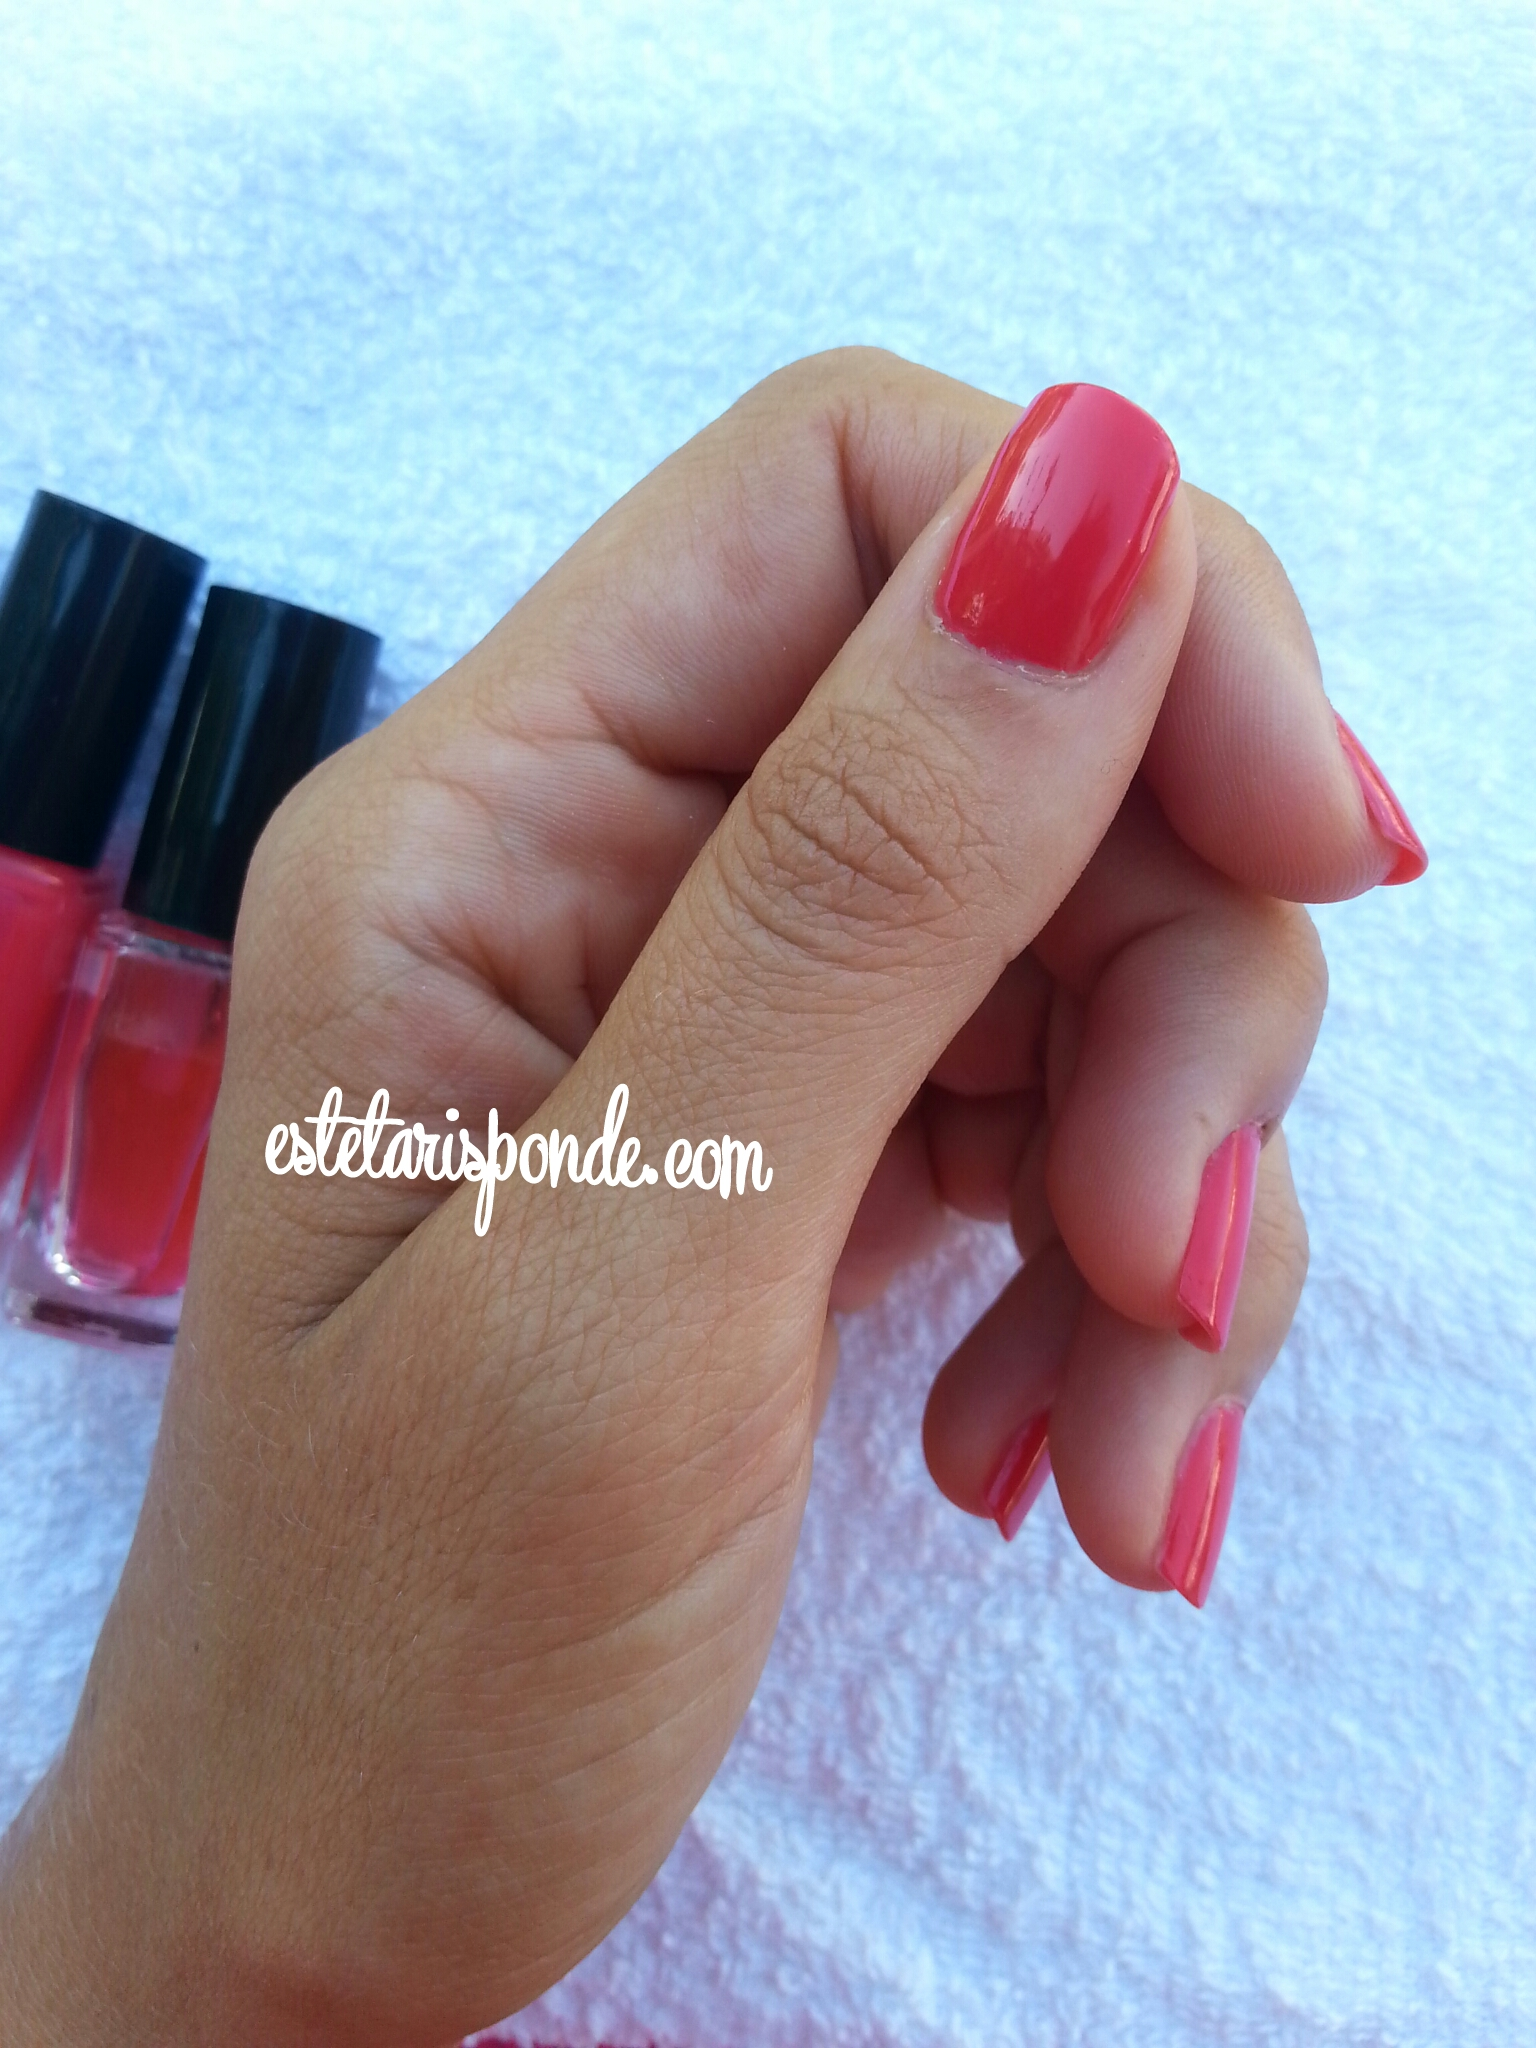 L'Oreal Infaillibile  gel 12 giorni - review e swatches